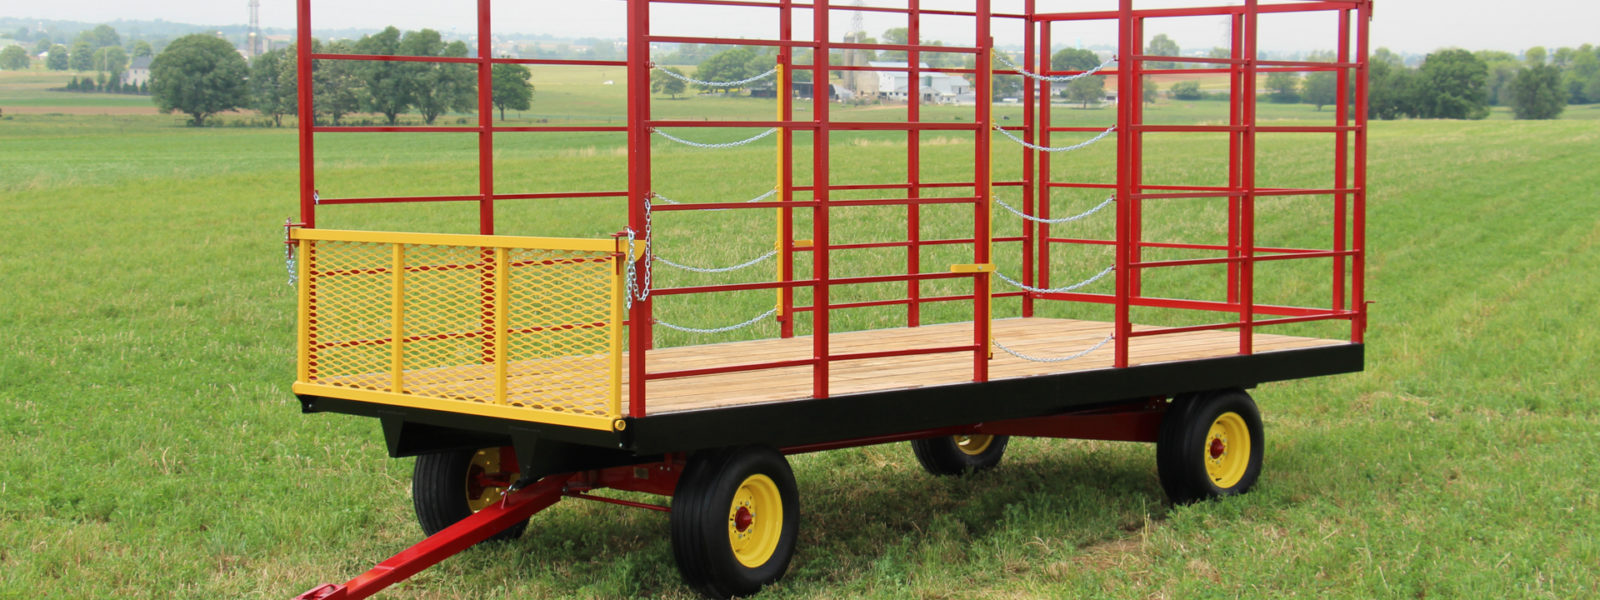 A hay wagon for sale from Farmco